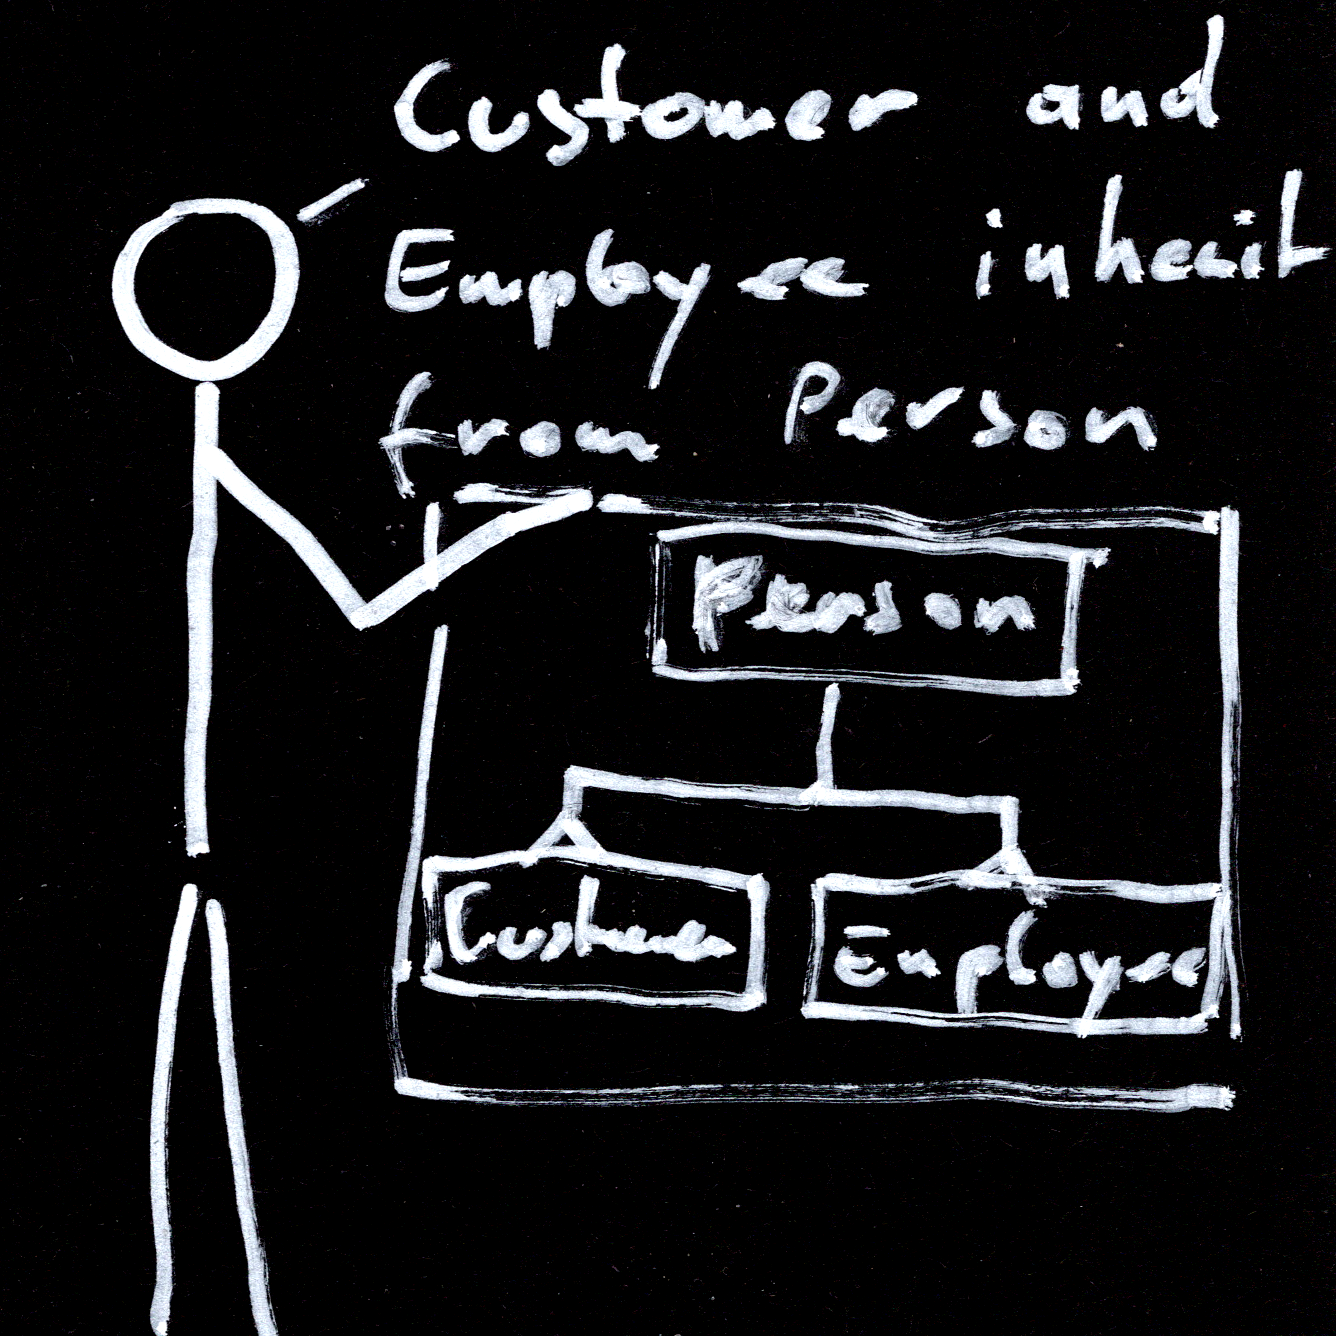 Customer and Employee inherit from Person